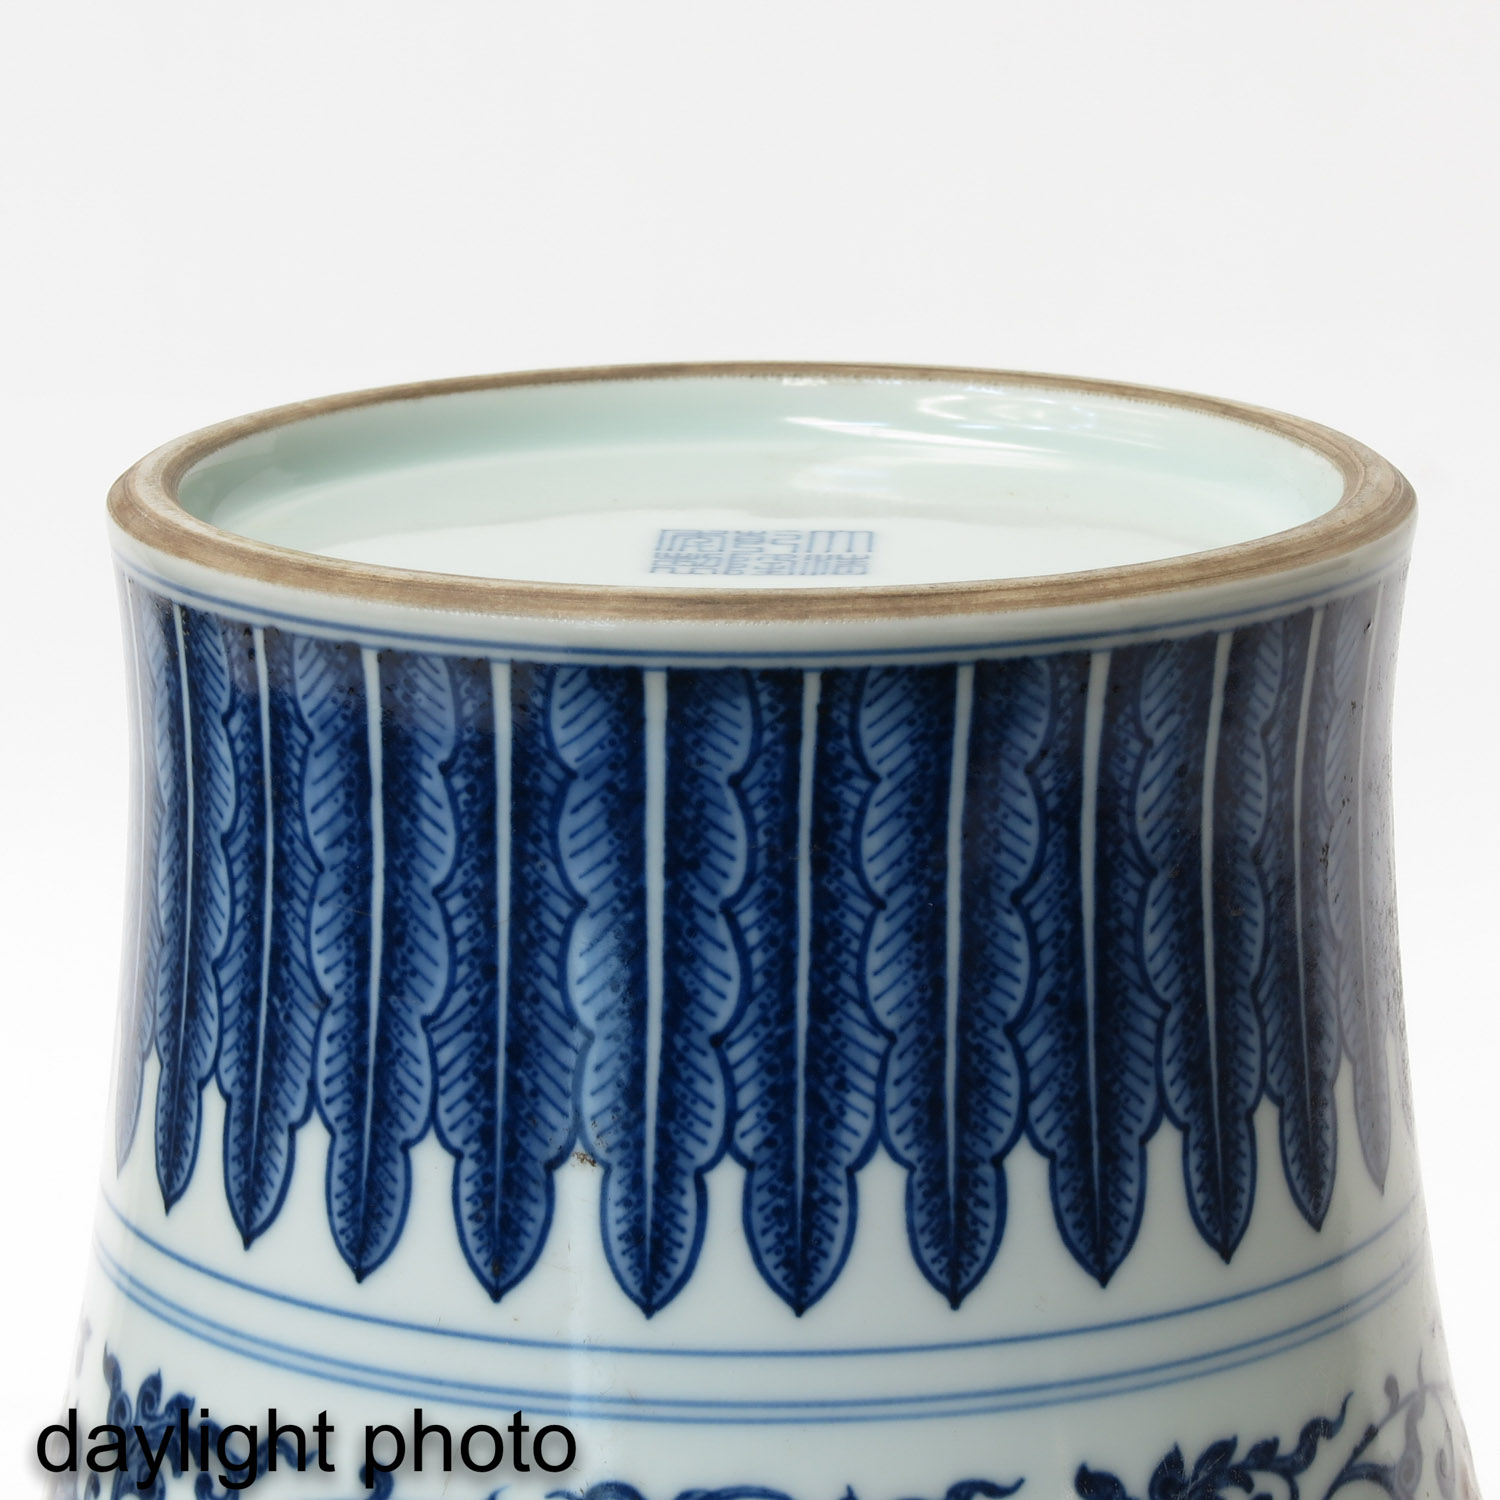 An Iron Red and Blue Decor Meiping Vase - Image 8 of 10